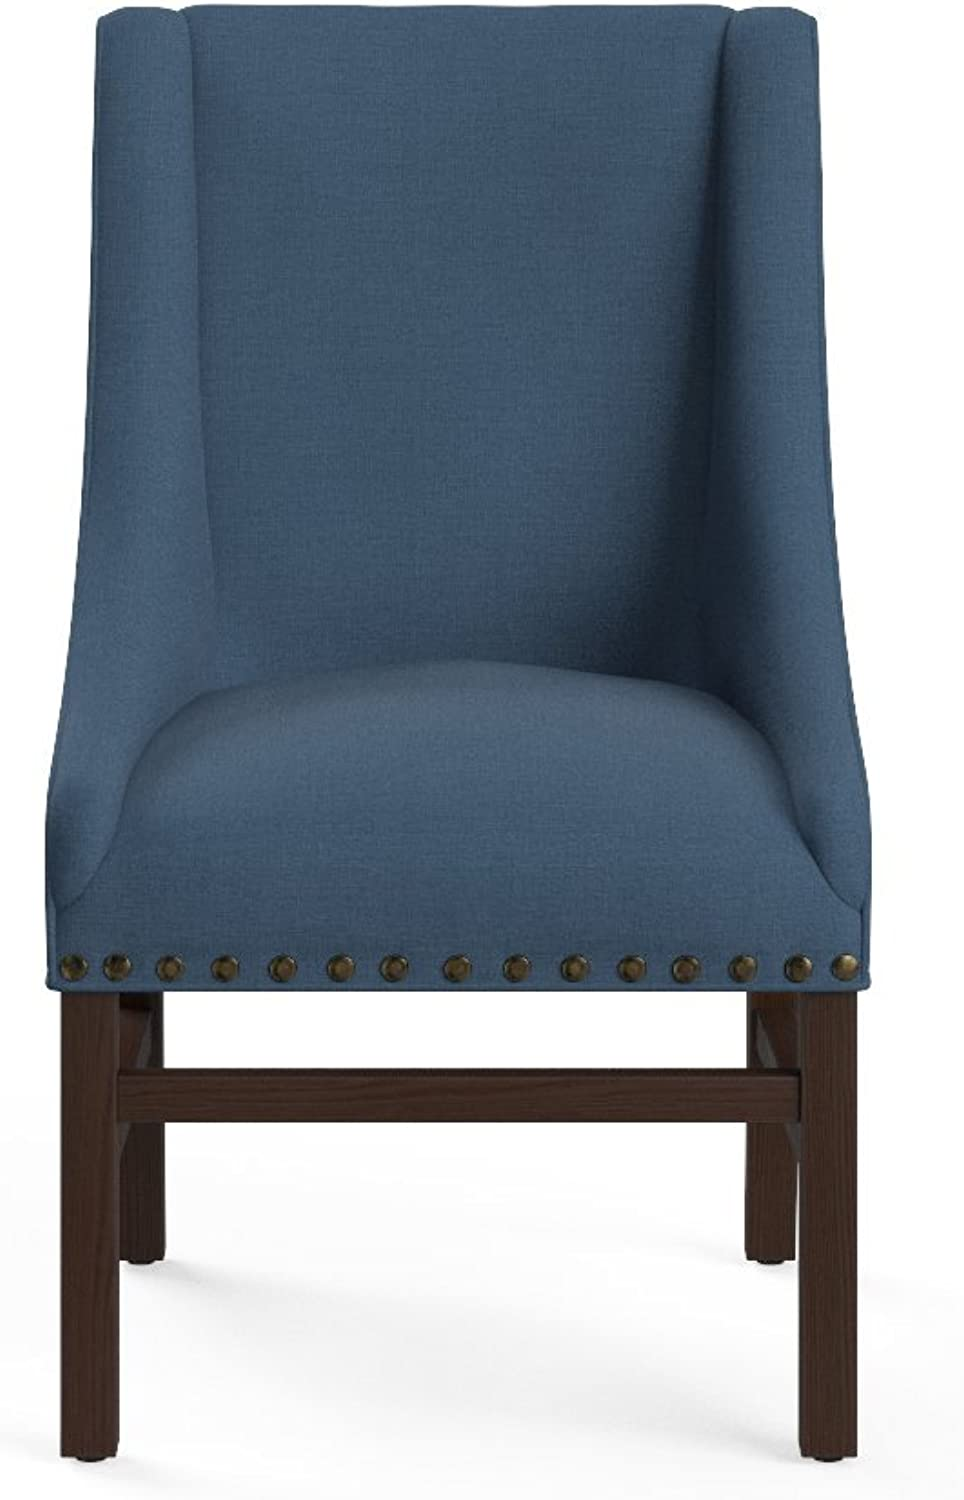 Bpink Madison Dining Chair - Classic Traditional Dining Chair Atlantic bluee (CHAMAD06blue)